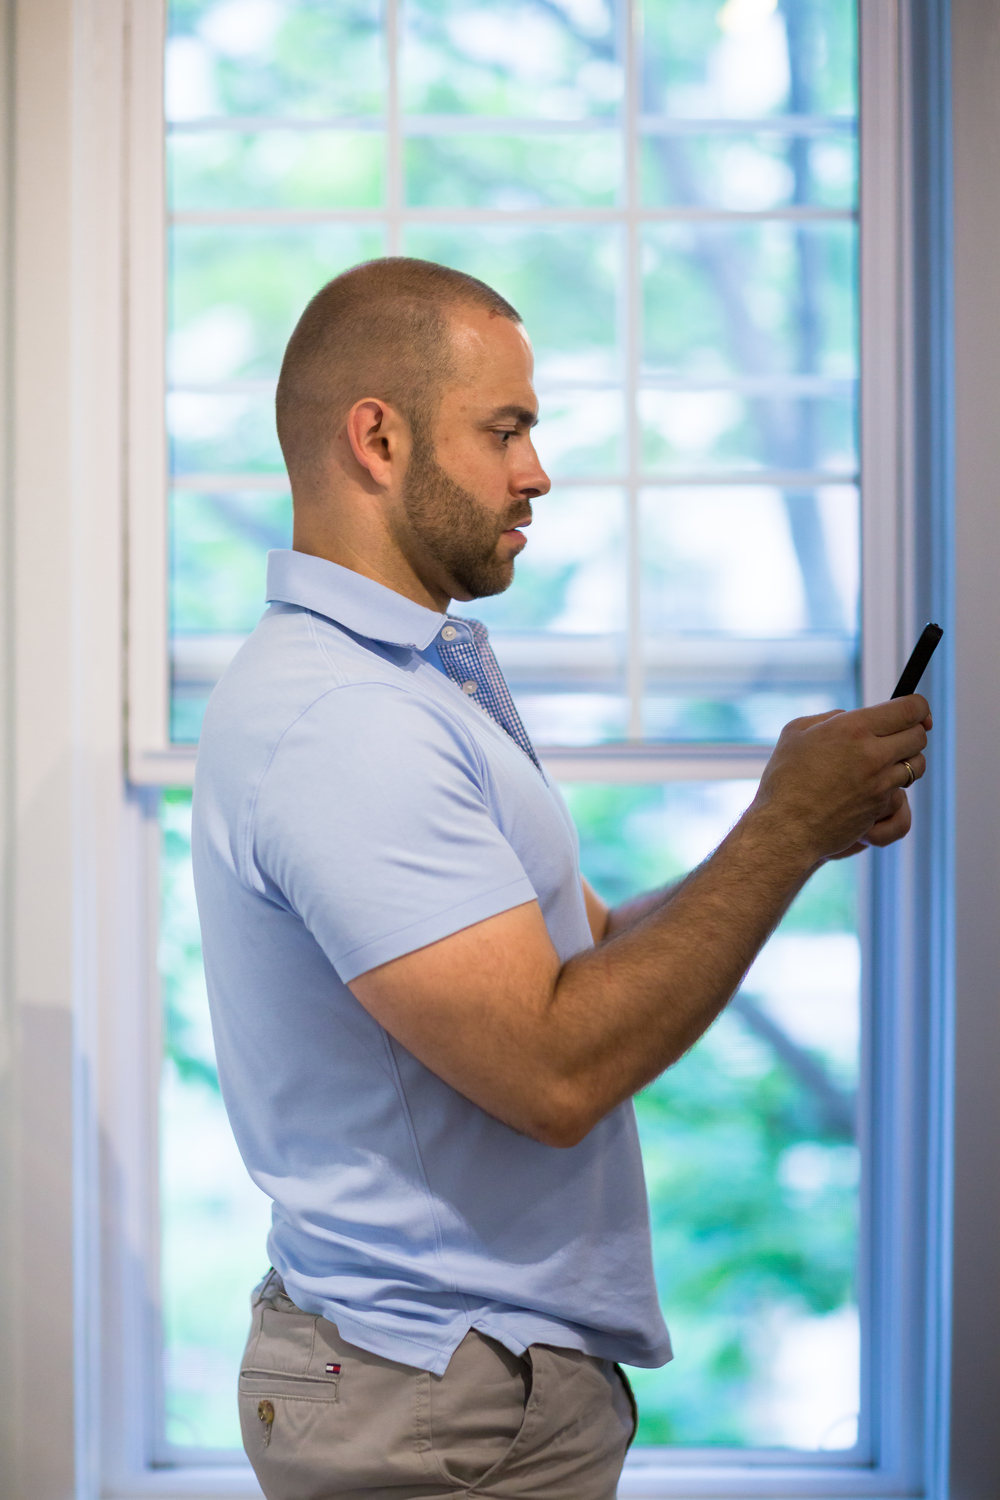 DO:  When standing and using your phone, bring the phone to chin height and it will push your body into an appropriate posture. Pulling your shoulder back and down can help as well..